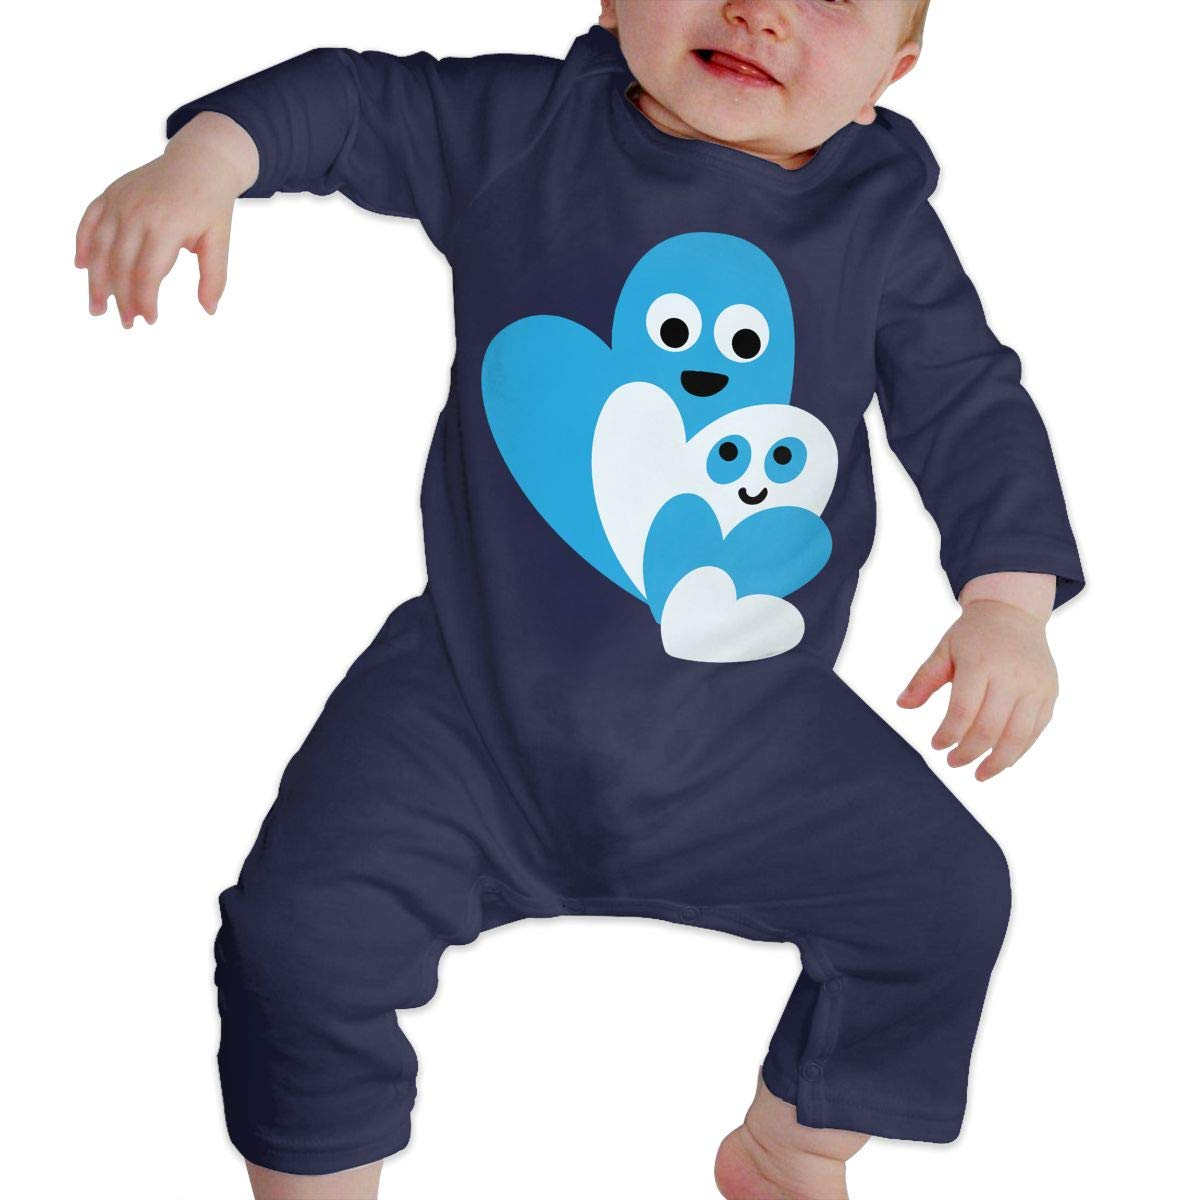 Baby Boy Jumpsuit Family of Happy Hearts Toddler Jumpsuit